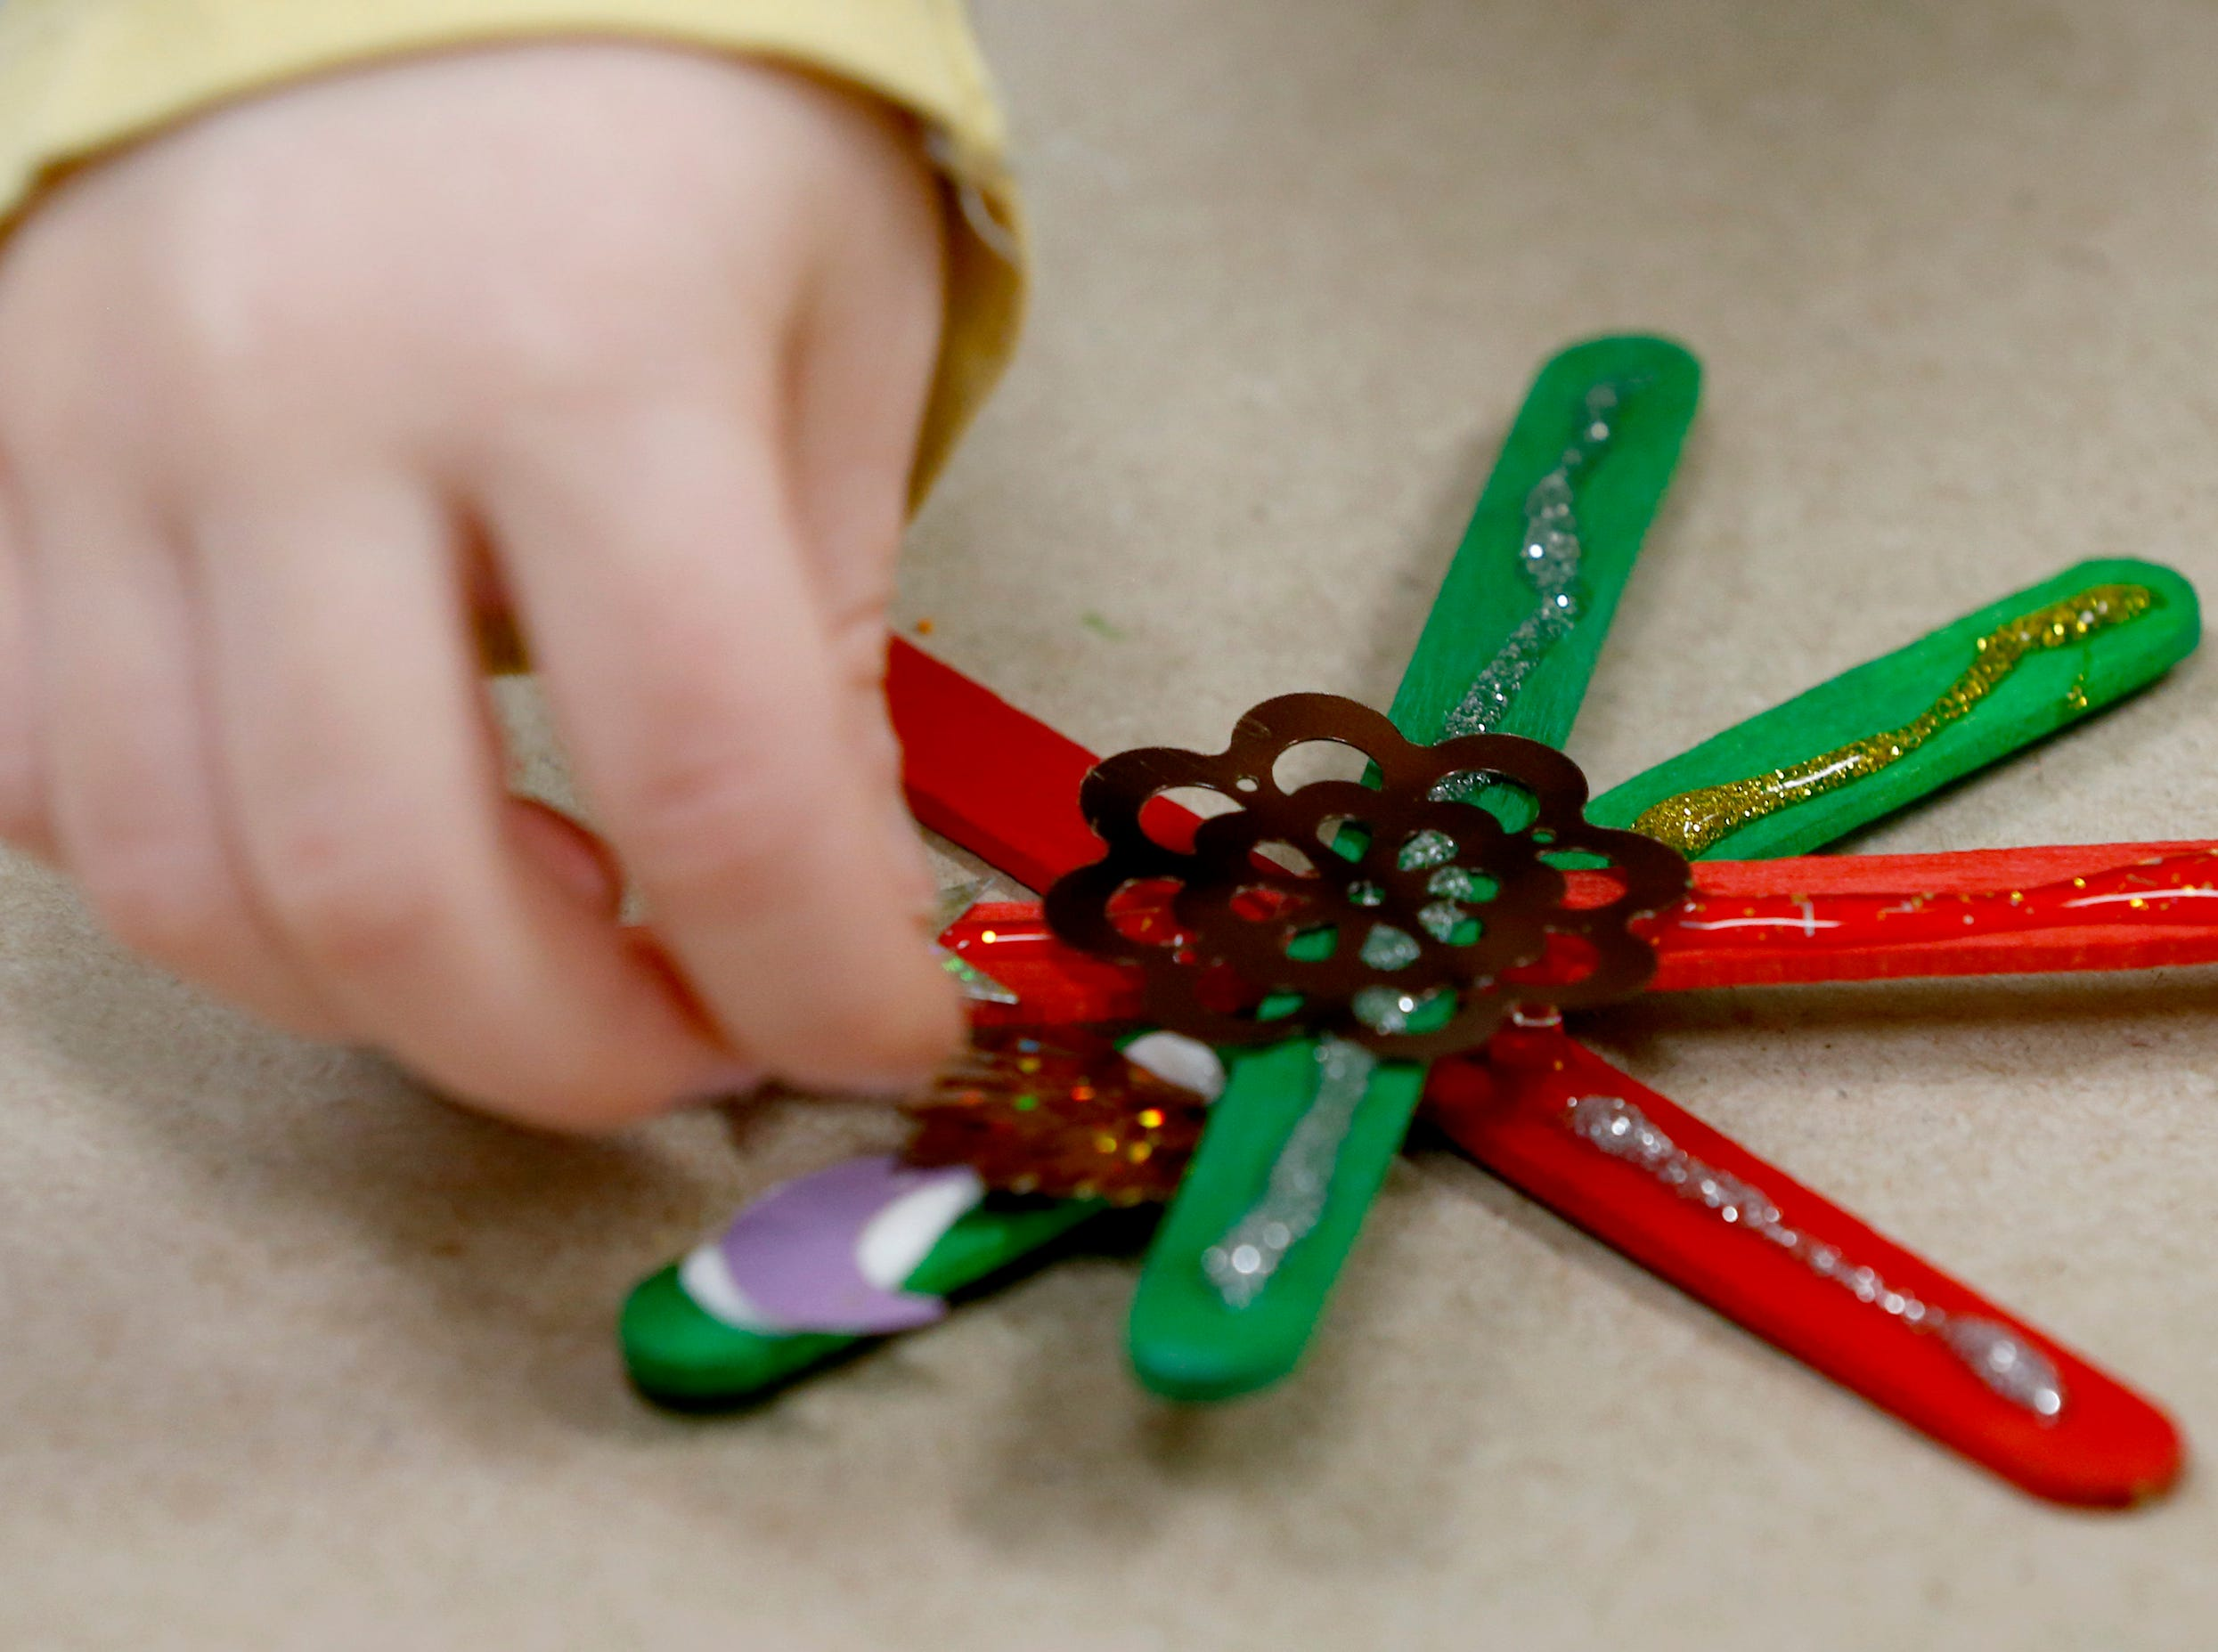 Amerlia Merkle, 4, adds sparkles to her snowflake during a holiday ornament workshop in the Mukwonago Community Library's MetaSpace 511 on Dec. 19.